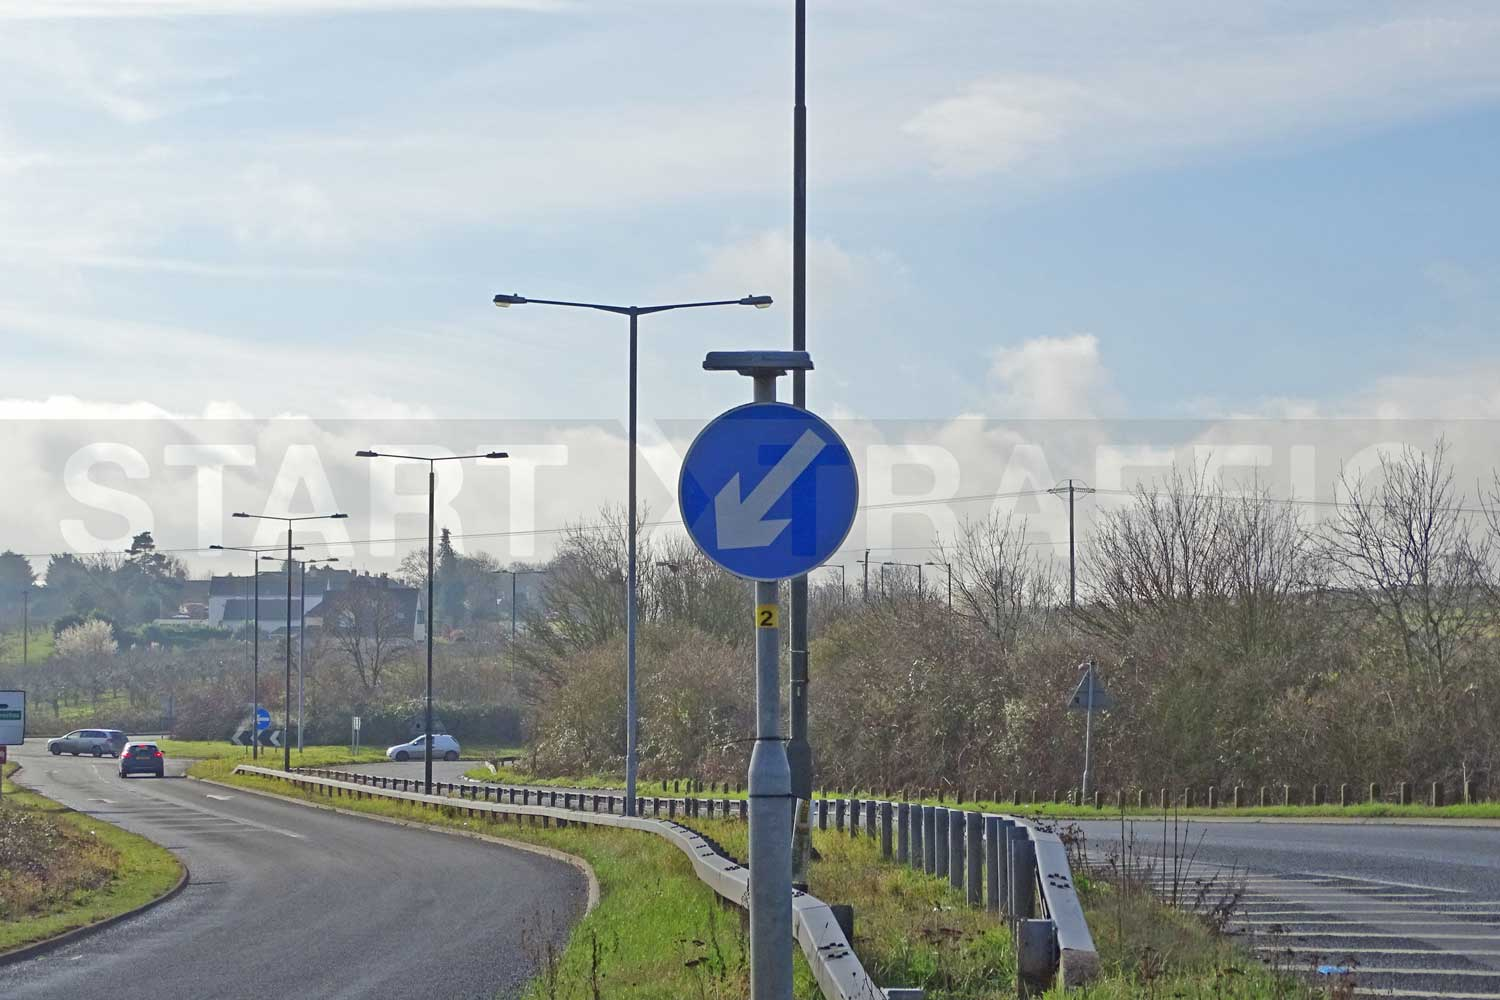 Keep Left sign installed on Duel carriageway